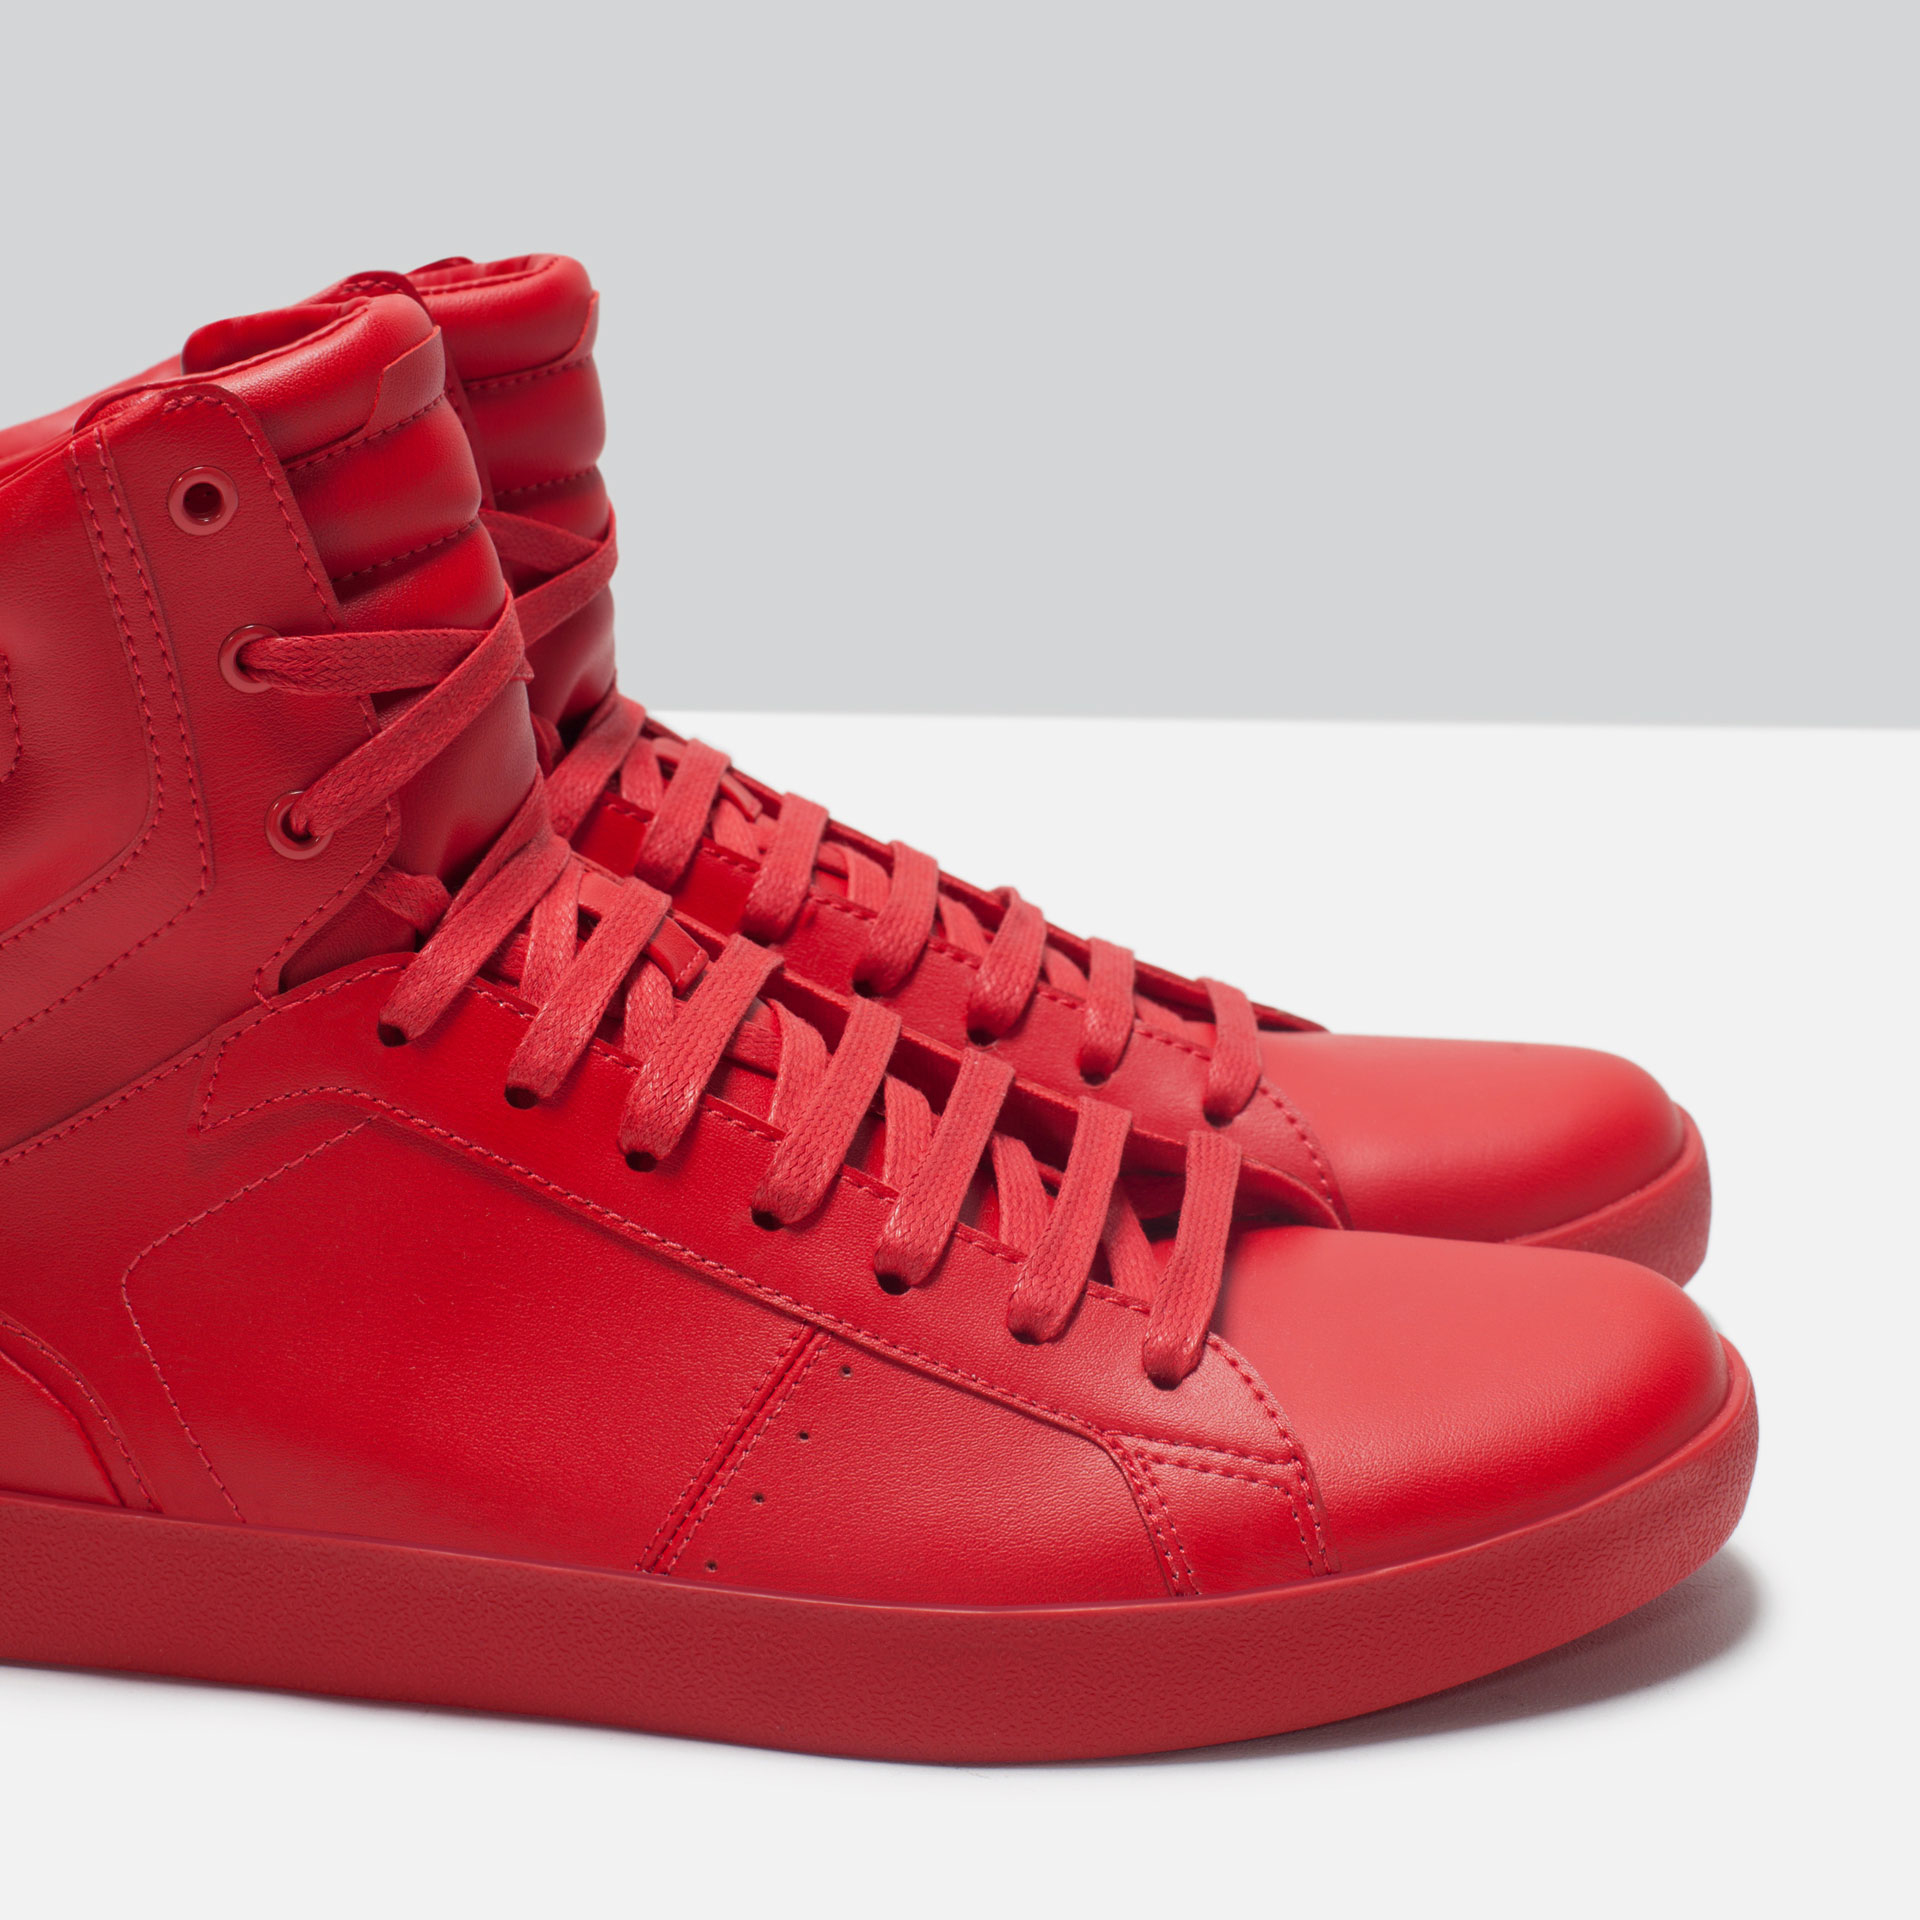 Zara Quilted FauxLeather HighTop Sneakers in Red for Men